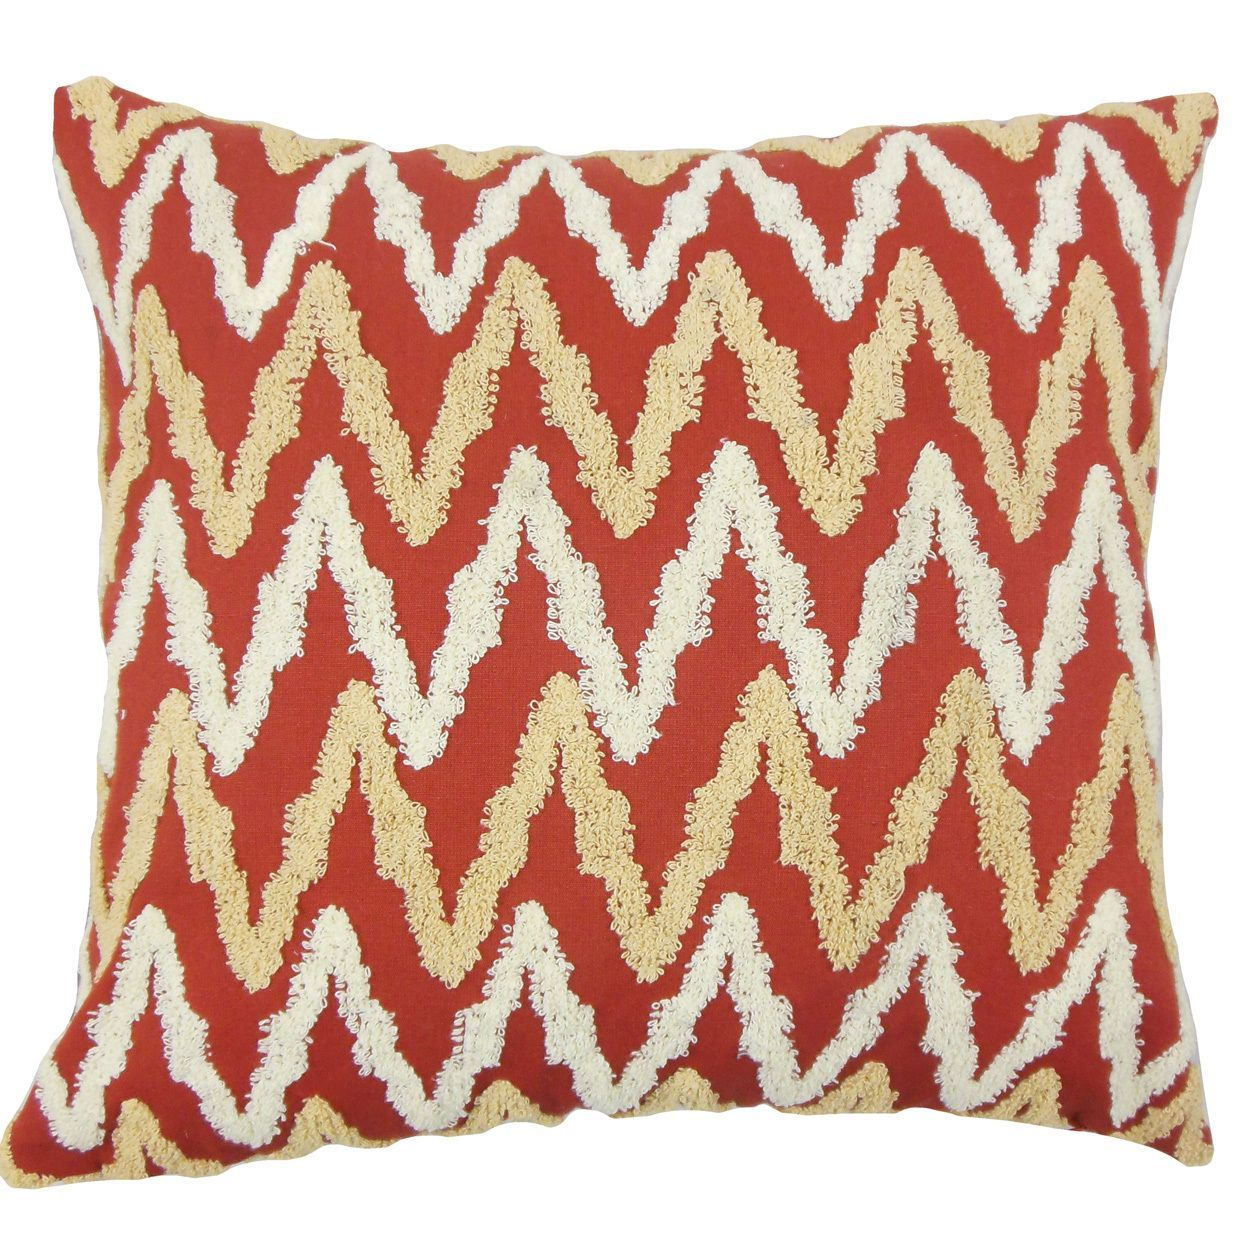 Chavi Down and Feather Filled Throw Pillow with Hidden Zipper Closure 18-inch